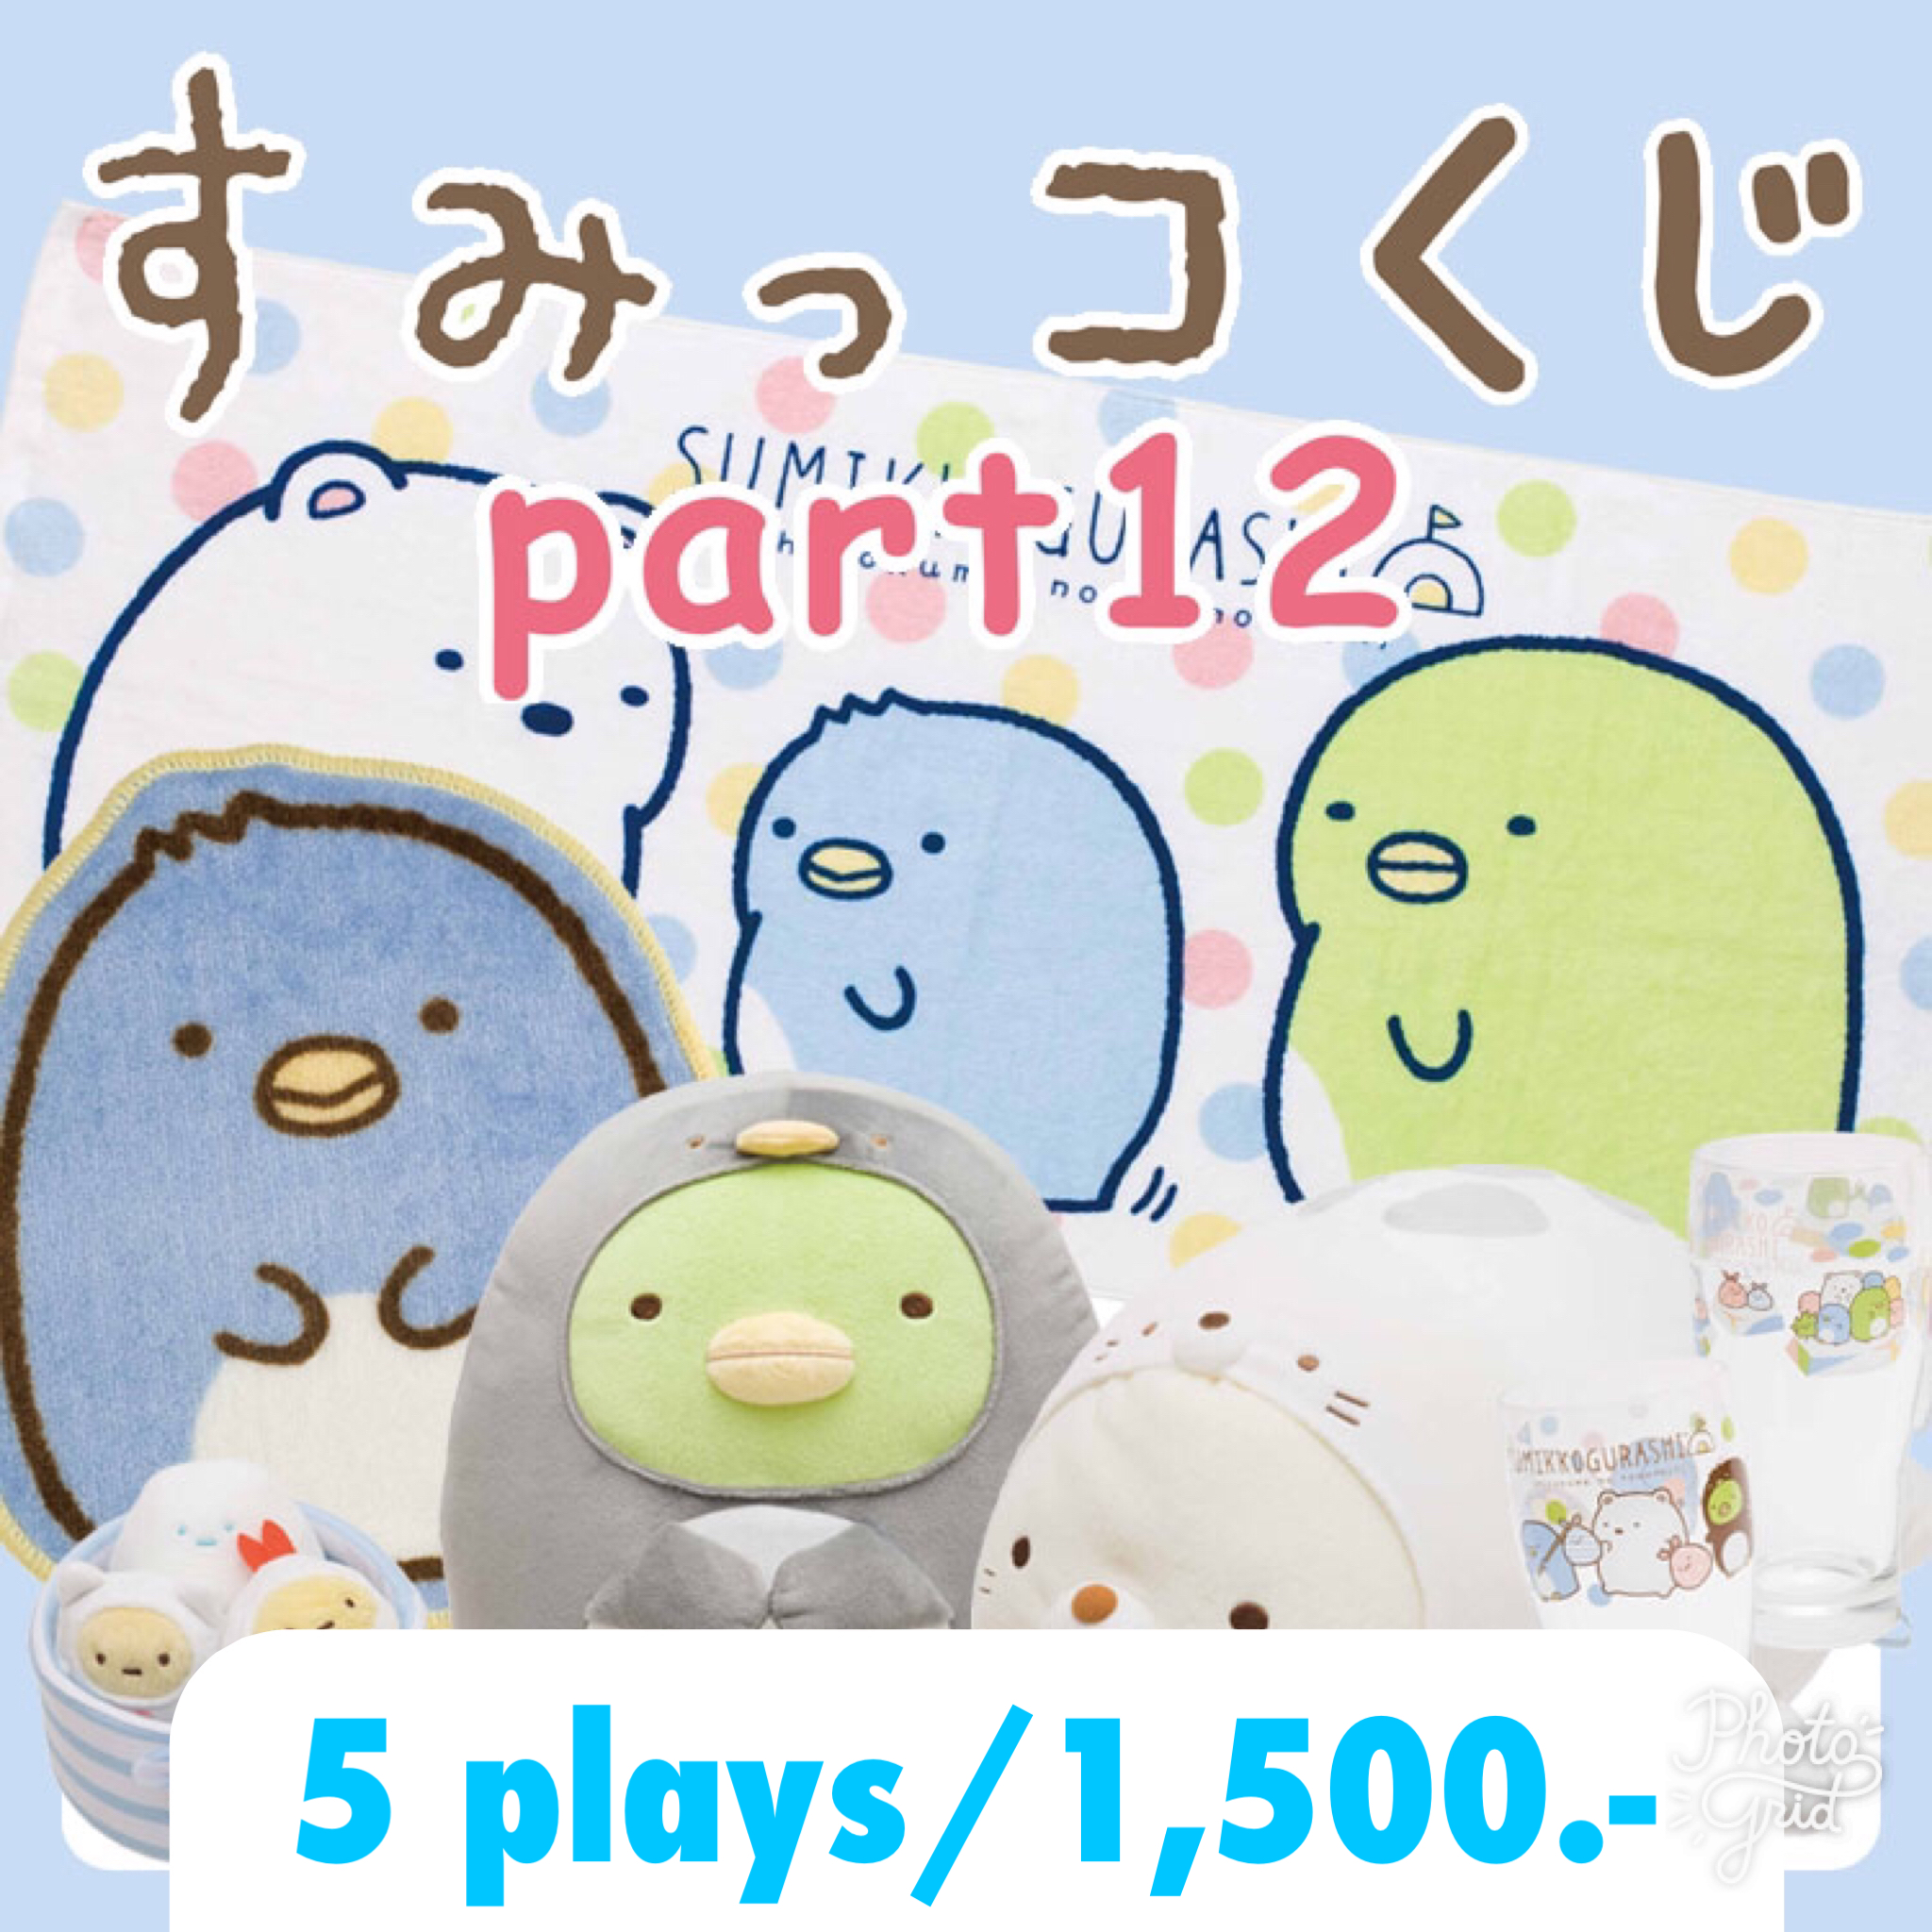 Sumikko Gurashi Part 12 (5 play)